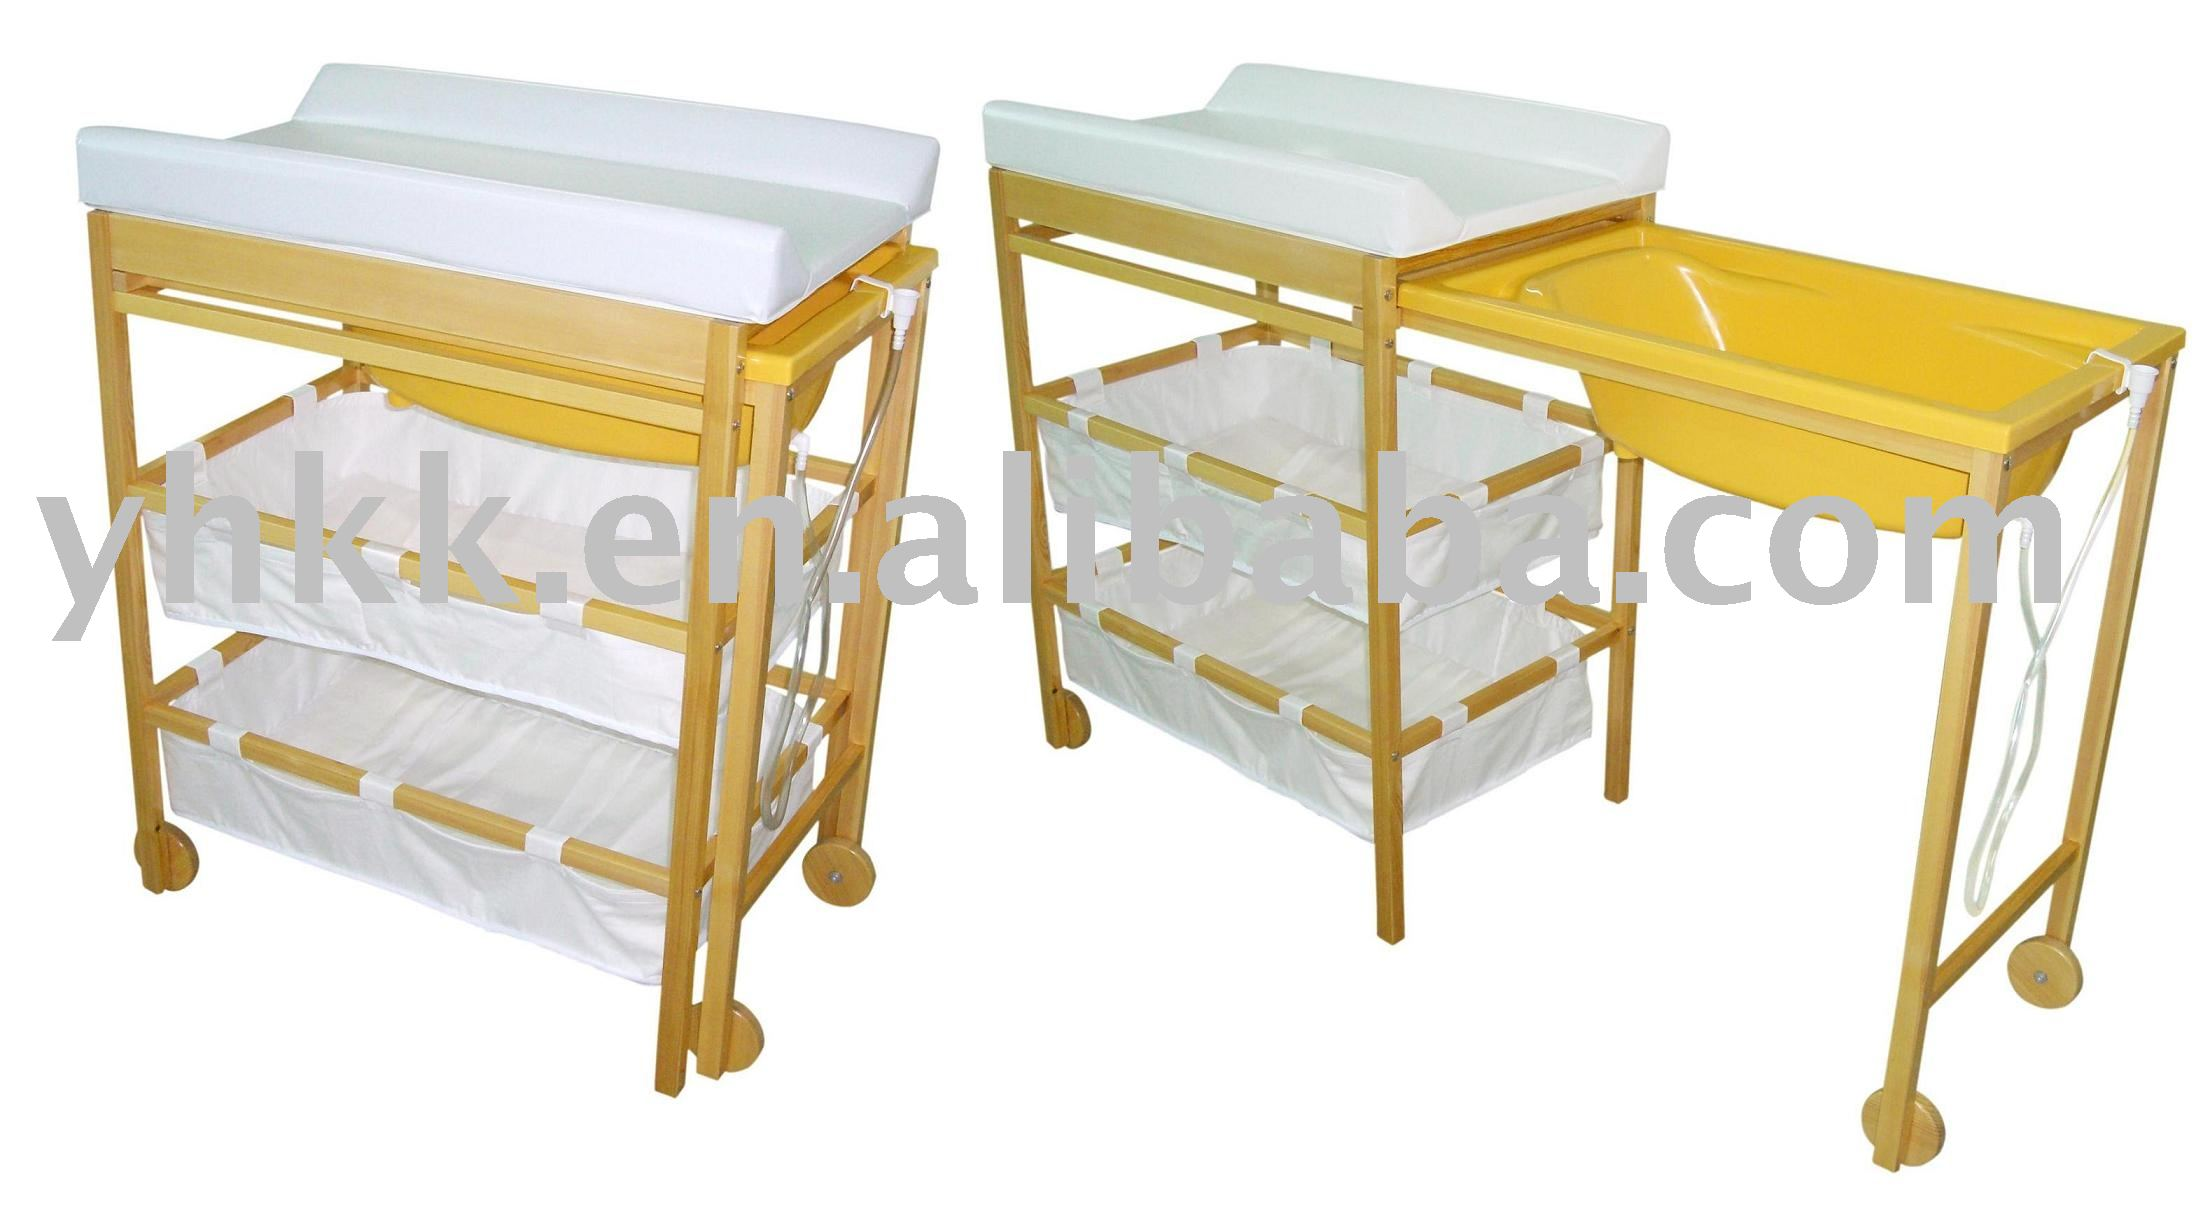 Cheapest Place To Buy Baby Furniture #19: Cheapest Place To Buy Baby Furniture, Cheapest Place To Buy Baby Furniture Suppliers And Manufacturers At Alibaba.com